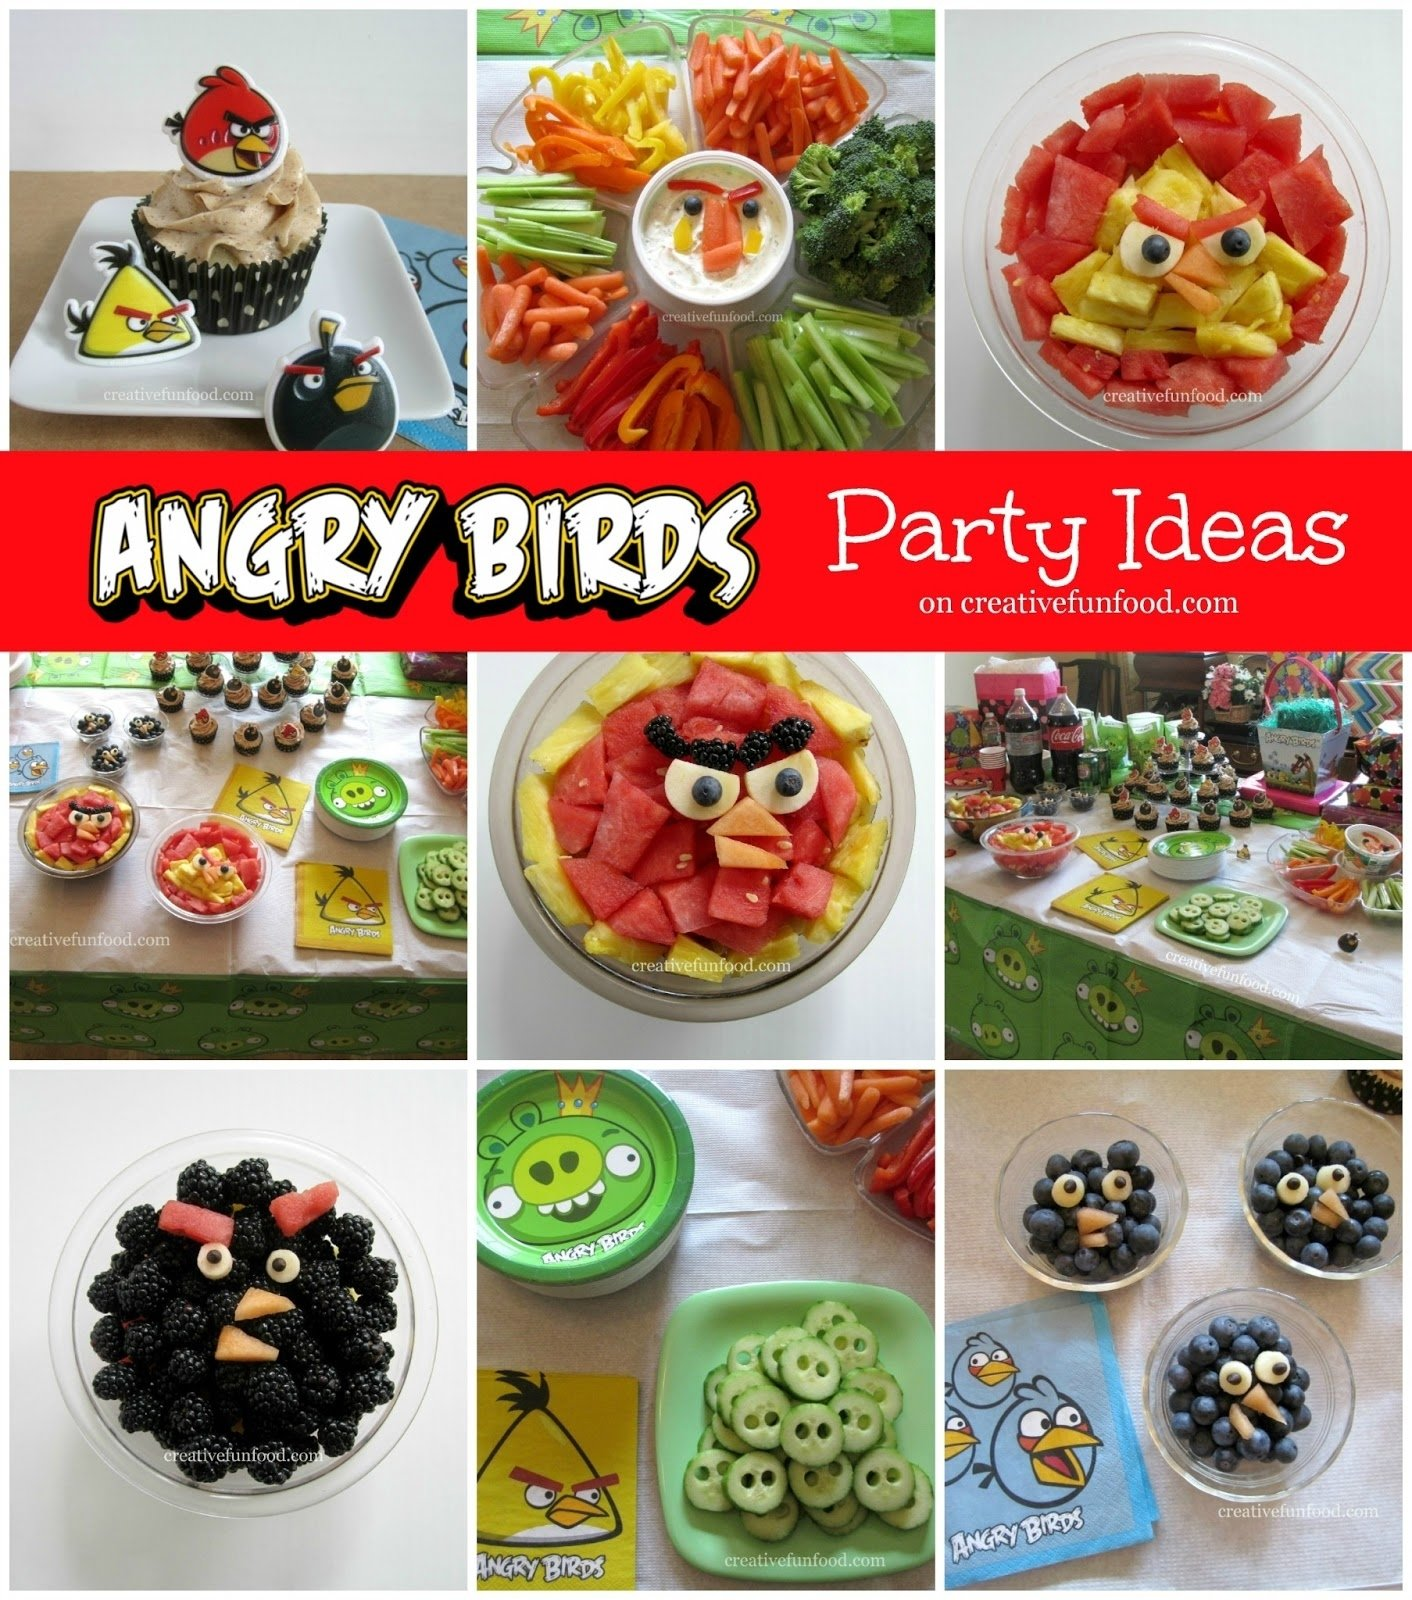 10 Famous Angry Bird Birthday Party Ideas angry birds birthday party ideas creative food 2 2020